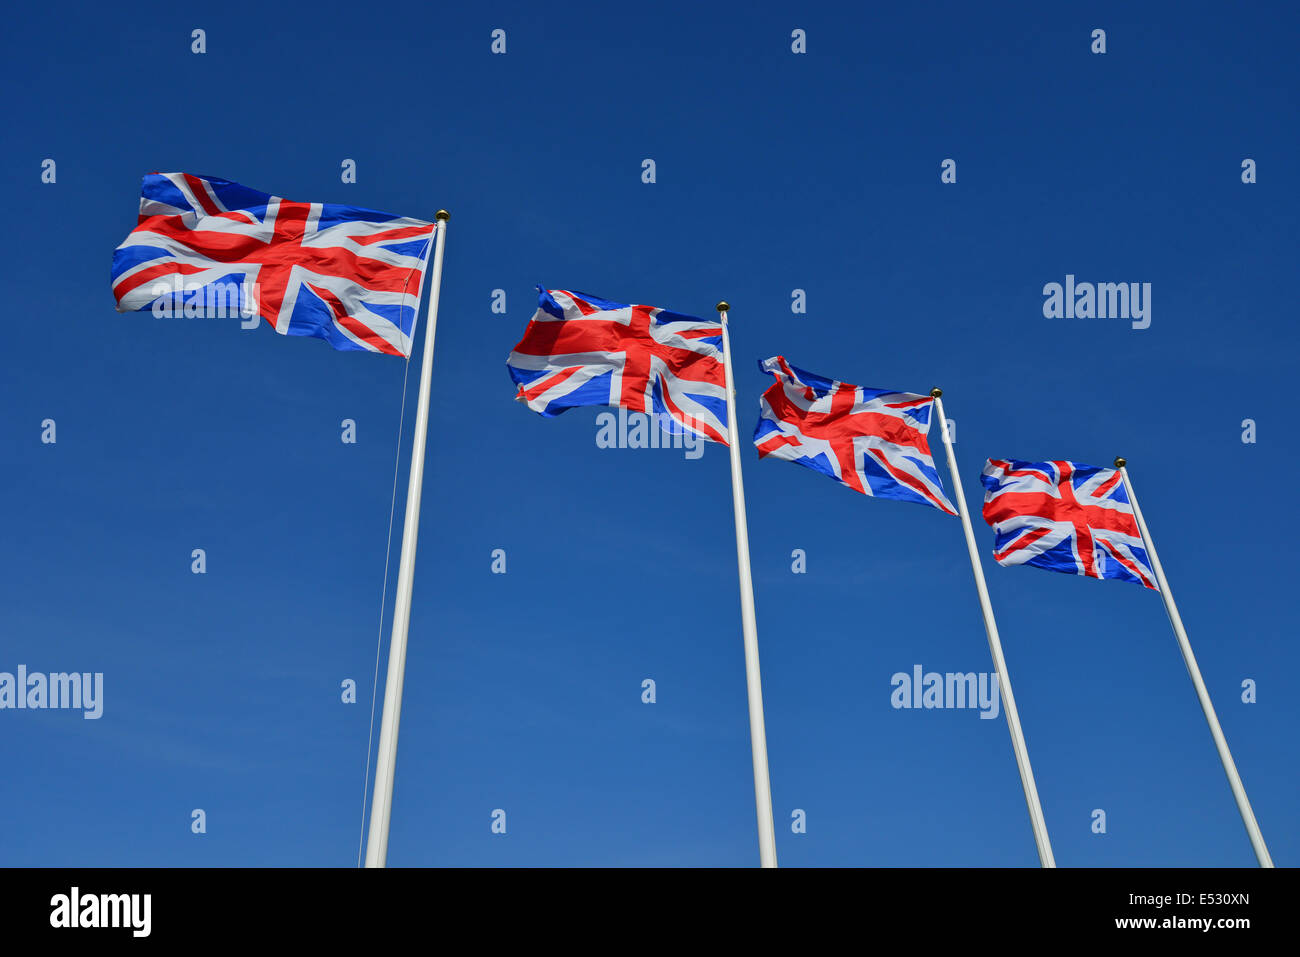 Club Flags Stock Photos & Club Flags Stock Images - Alamy